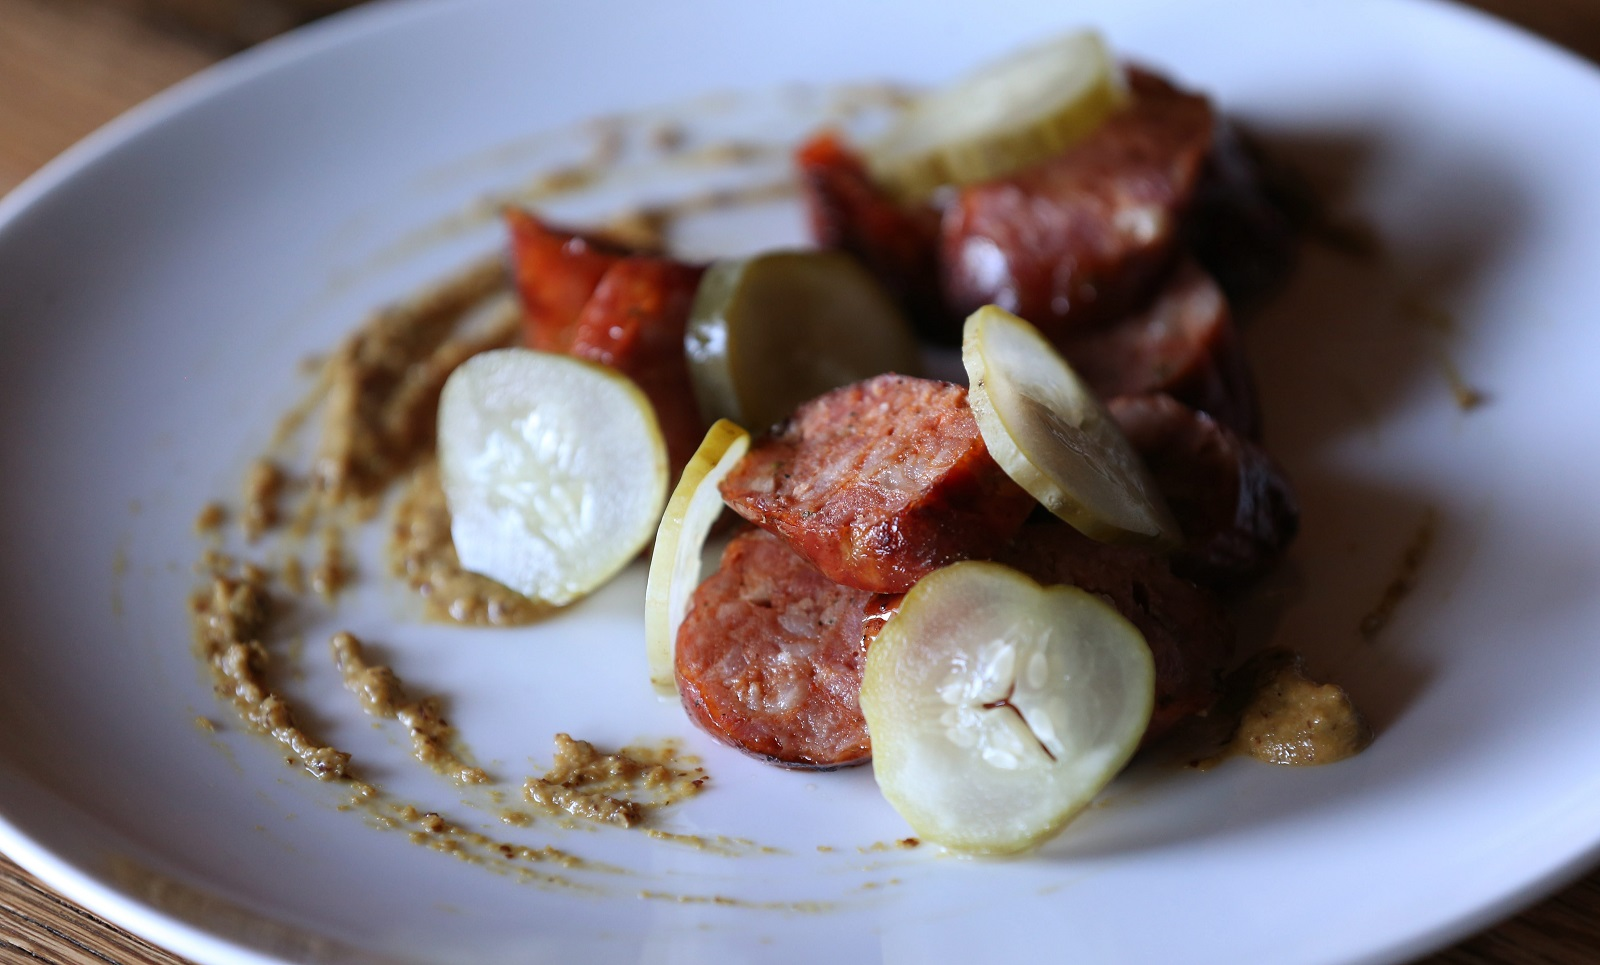 Toutant's smoked sausage appetizer is made with andouille sausage, red eye mustard and pickled cucumbers. (Sharon Cantillon/Buffalo News)